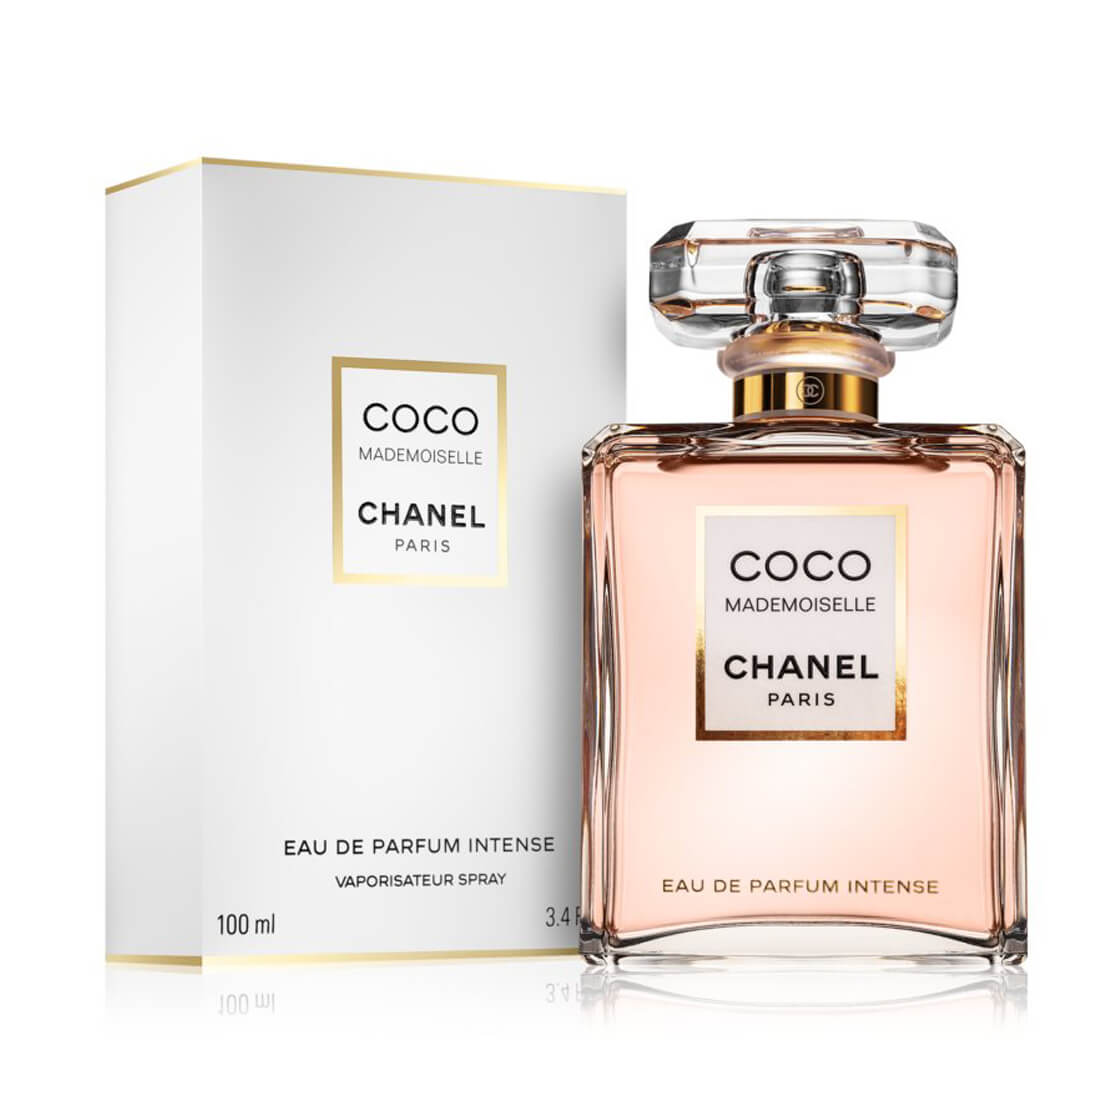 Chanel Coco Mademoiselle Intense Eau De Perfume For Women - 100ml